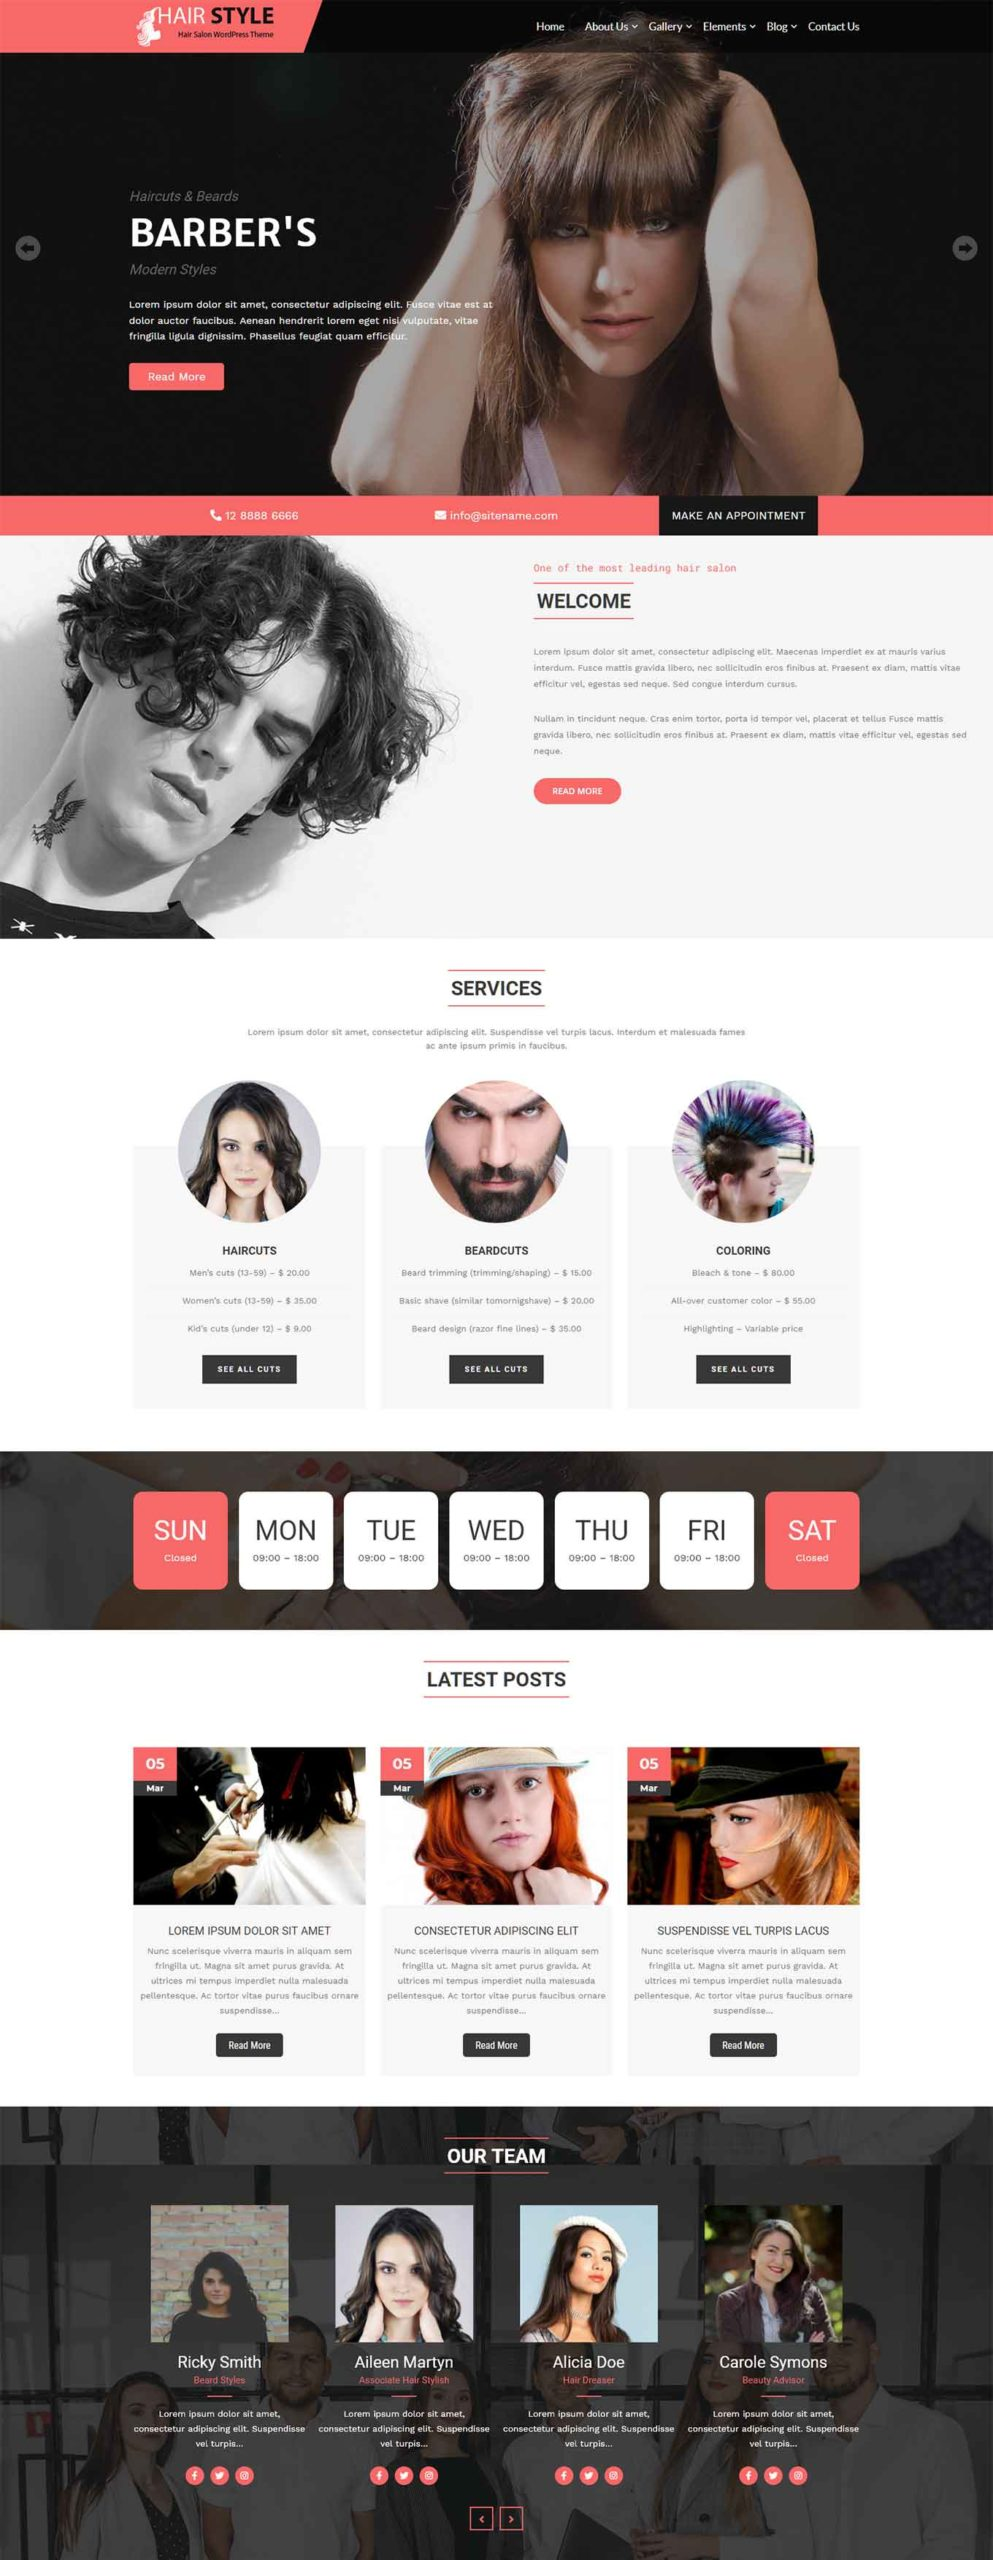 40 Best Hair Salon WordPress Themes 2021 Free Premium Theme Junkie